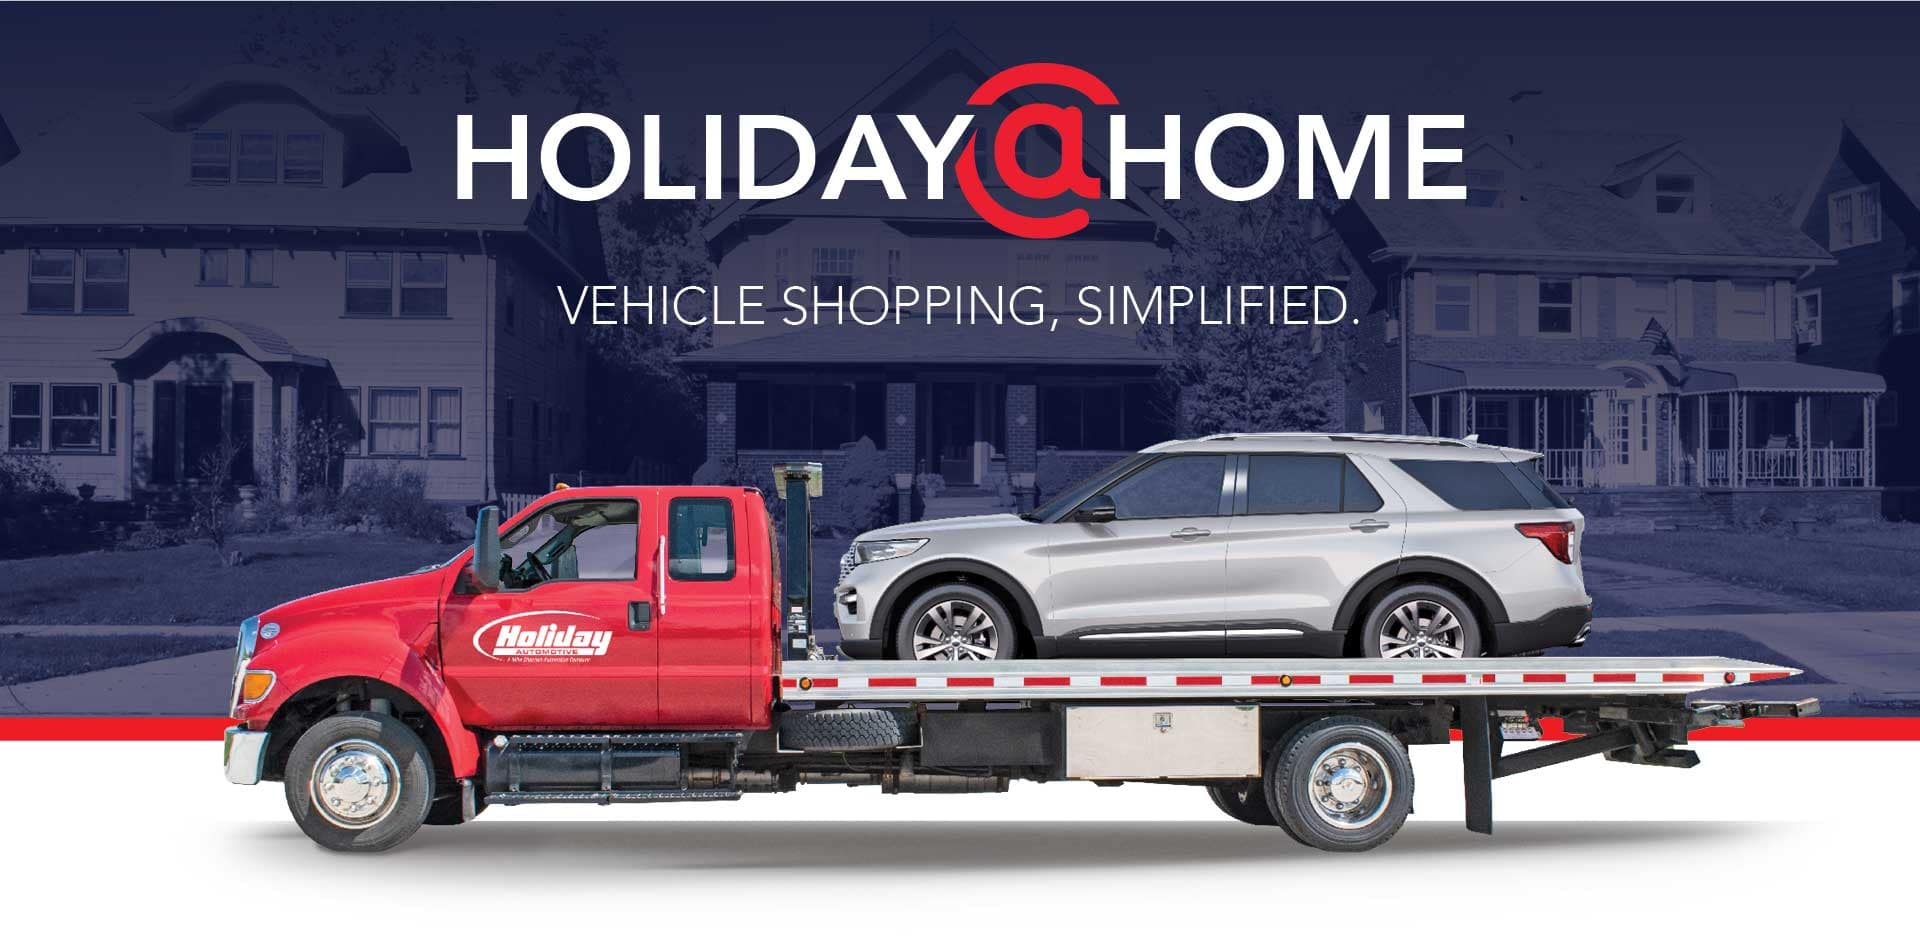 Holiday@Home, Vehicle shopping, simplified.